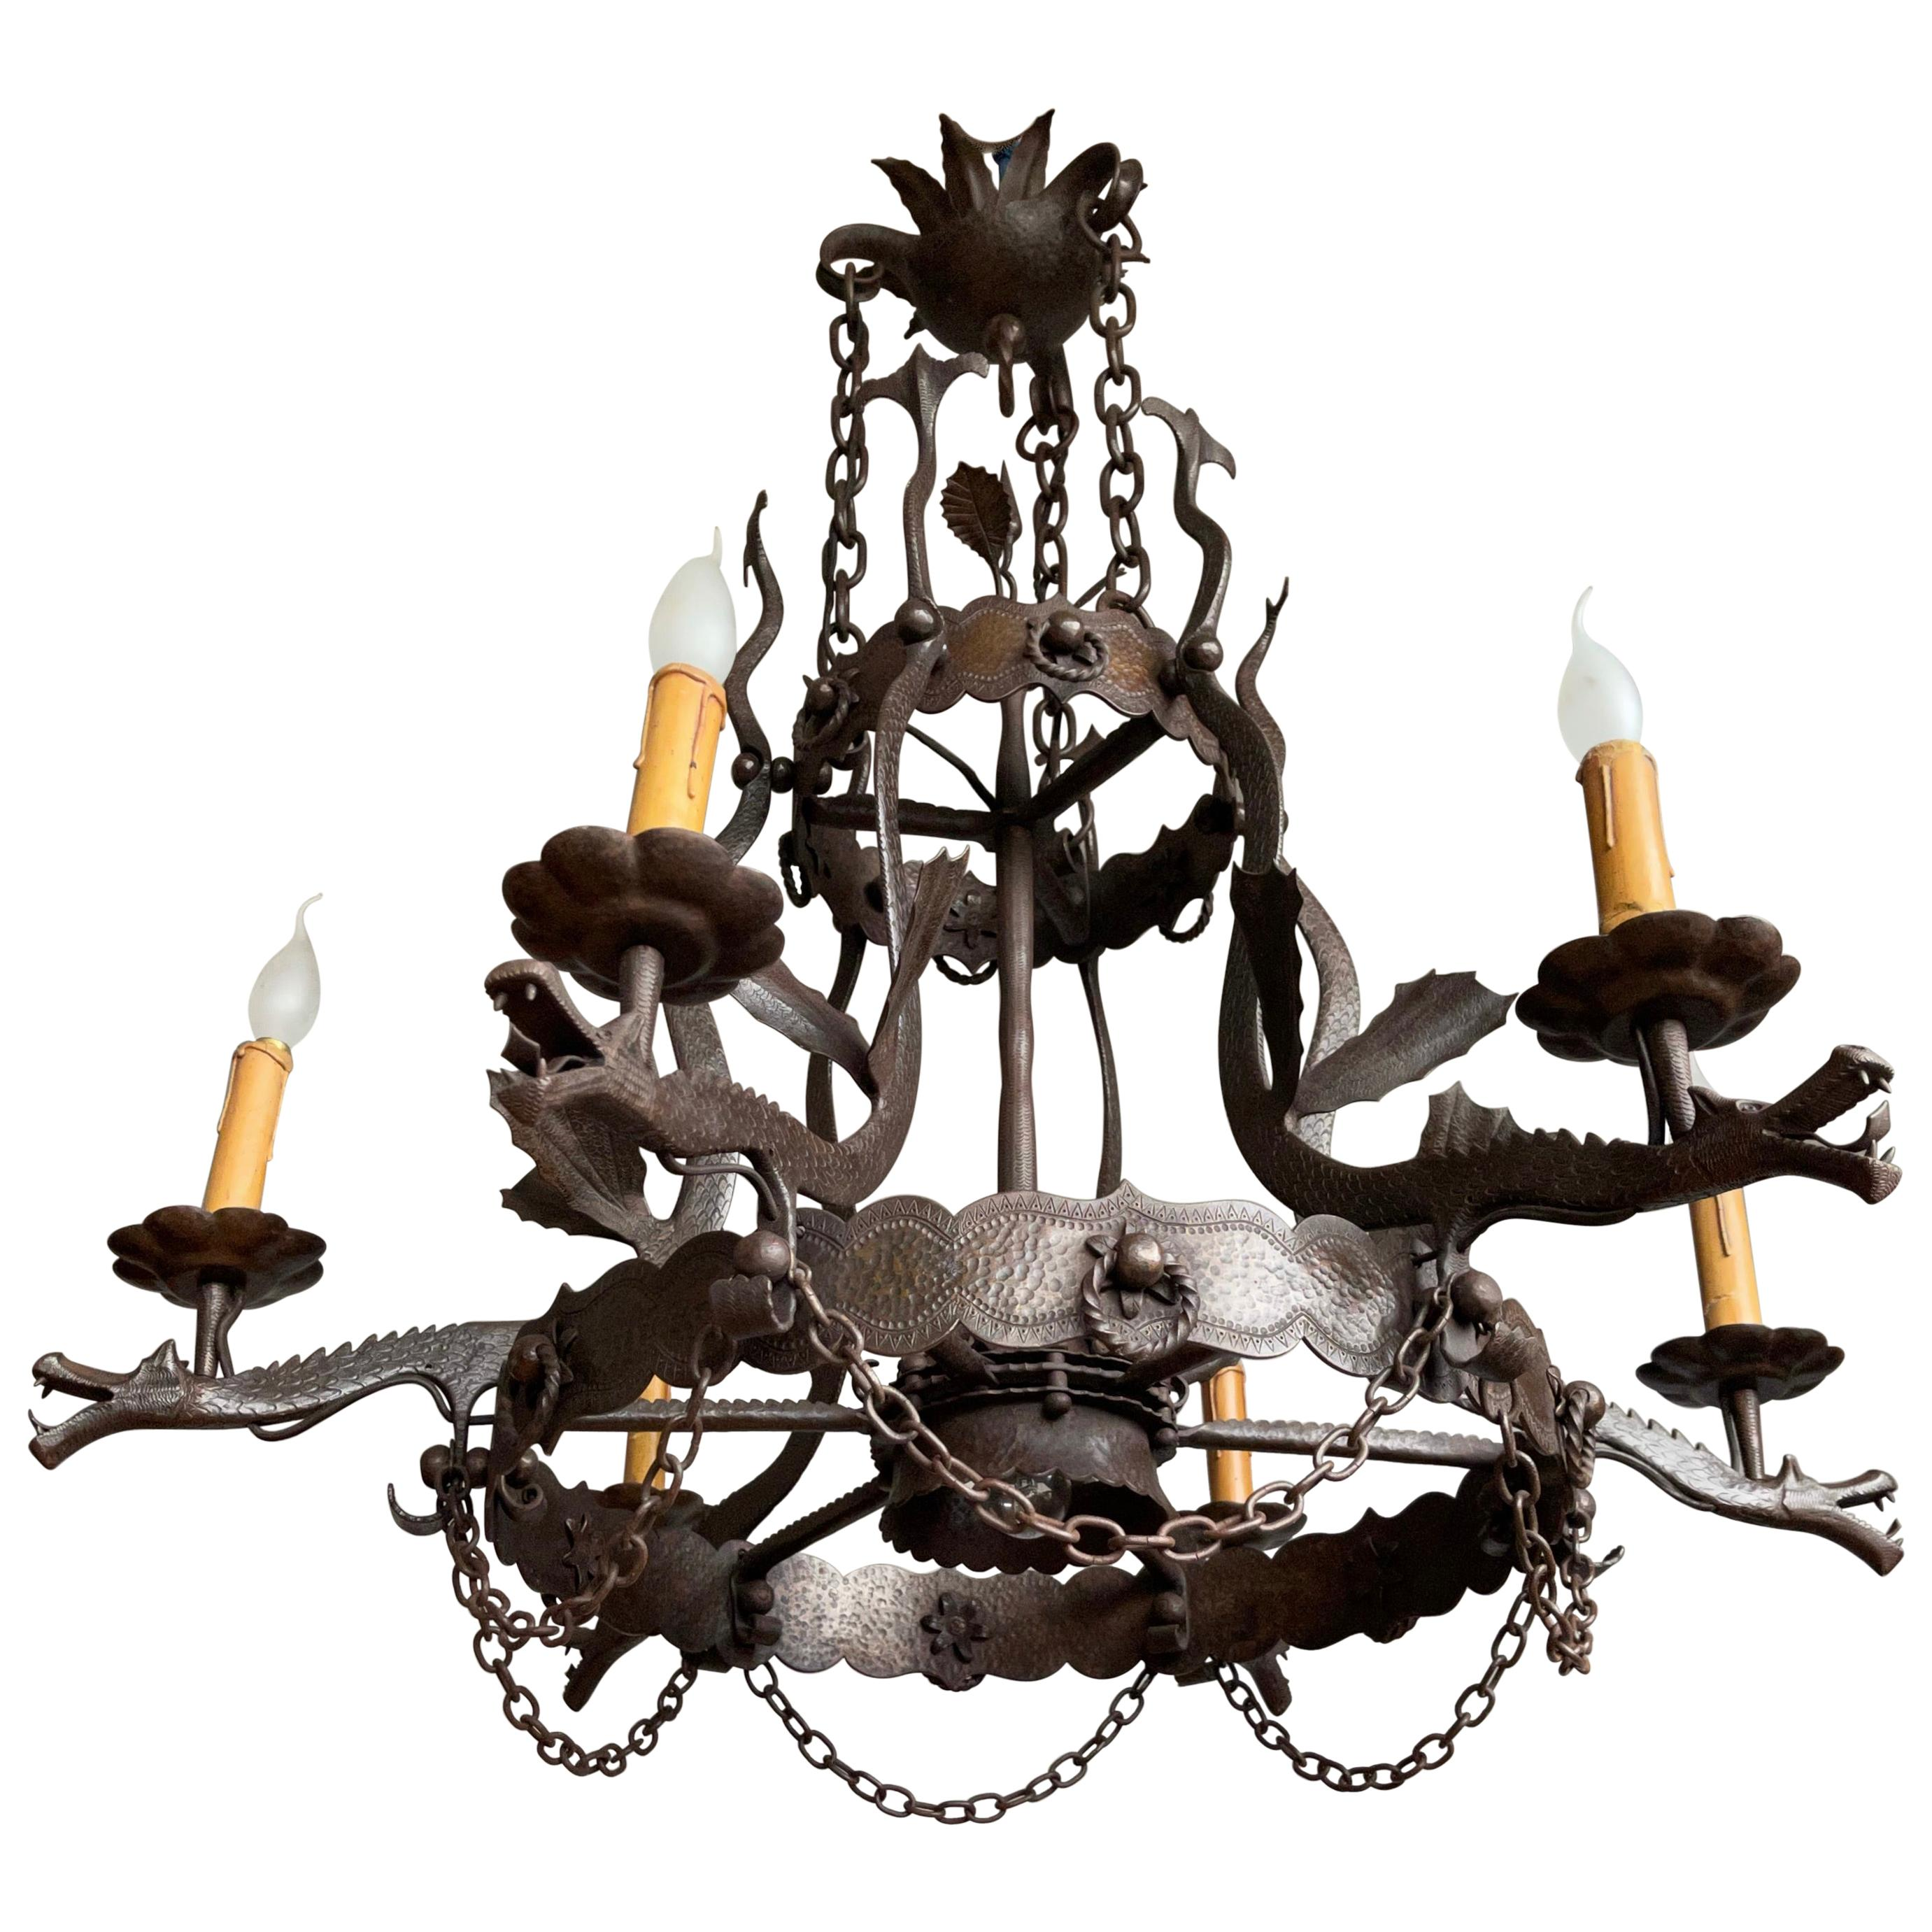 Impressive Large Forged Wrought Iron Seven-Light Chandelier w Dragon Sculptures